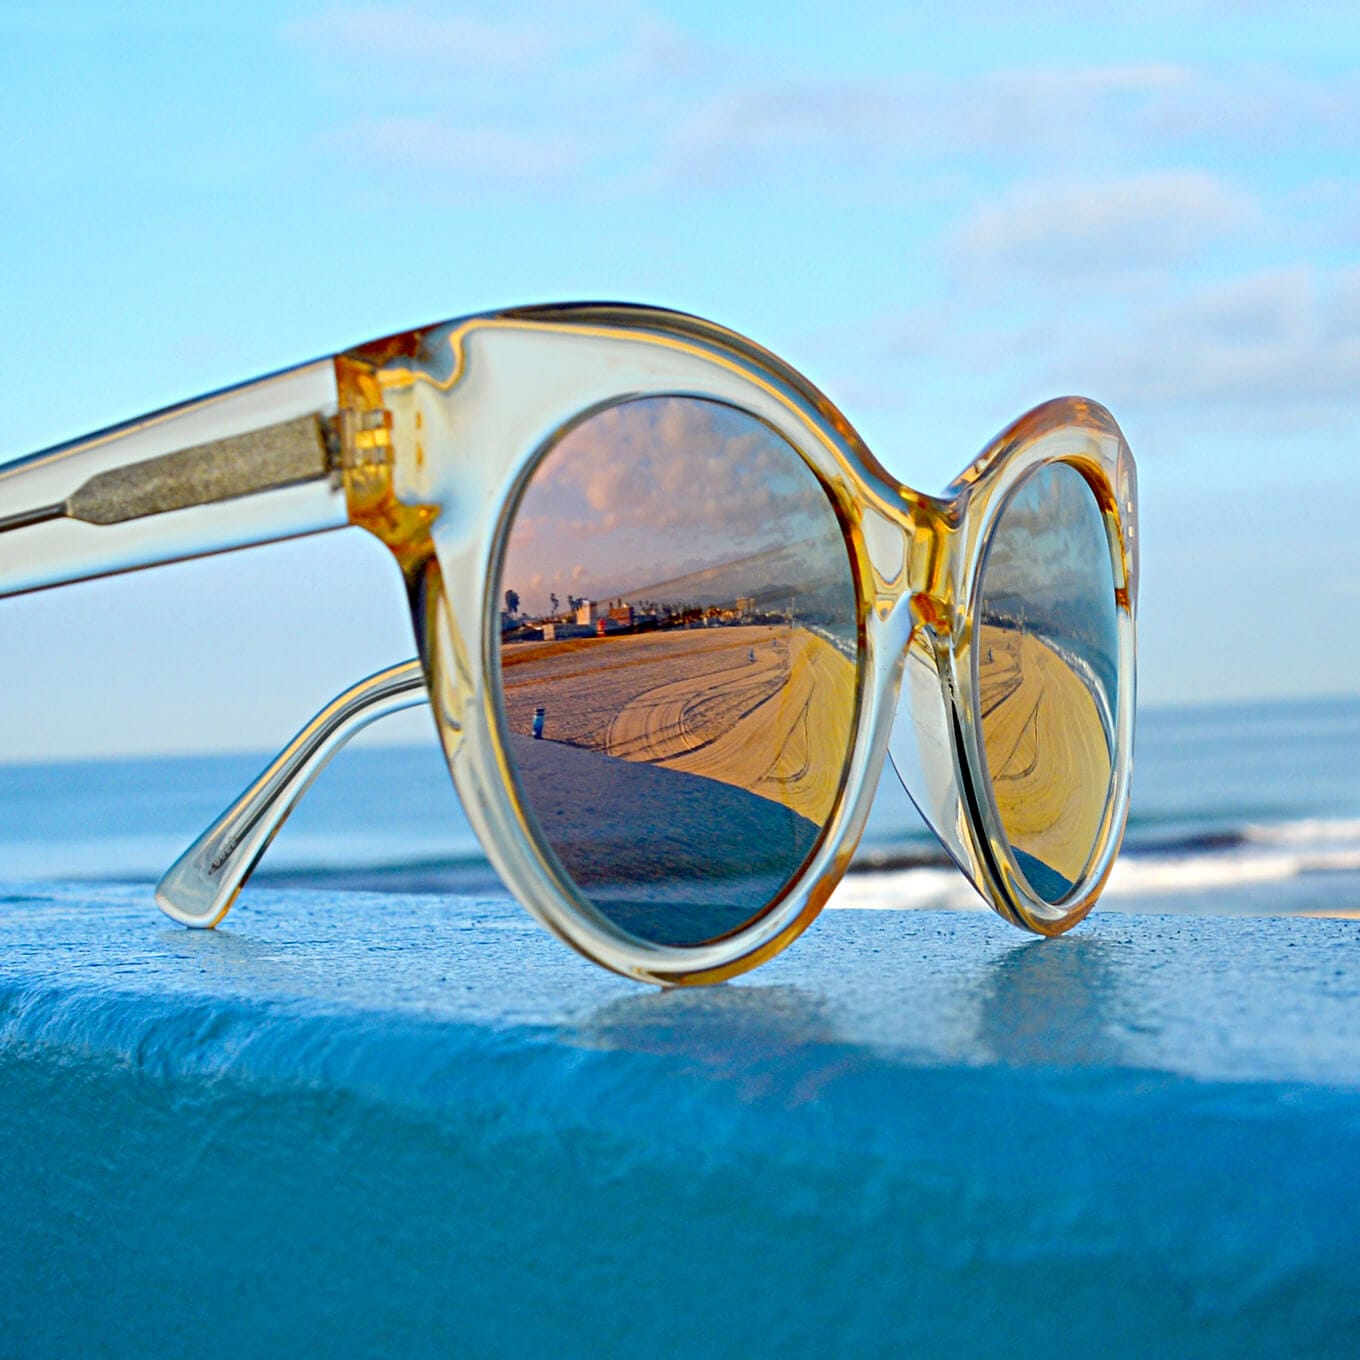 Venice cat-eye acetate sunglasses in translucent yellow with silver mirror tint.